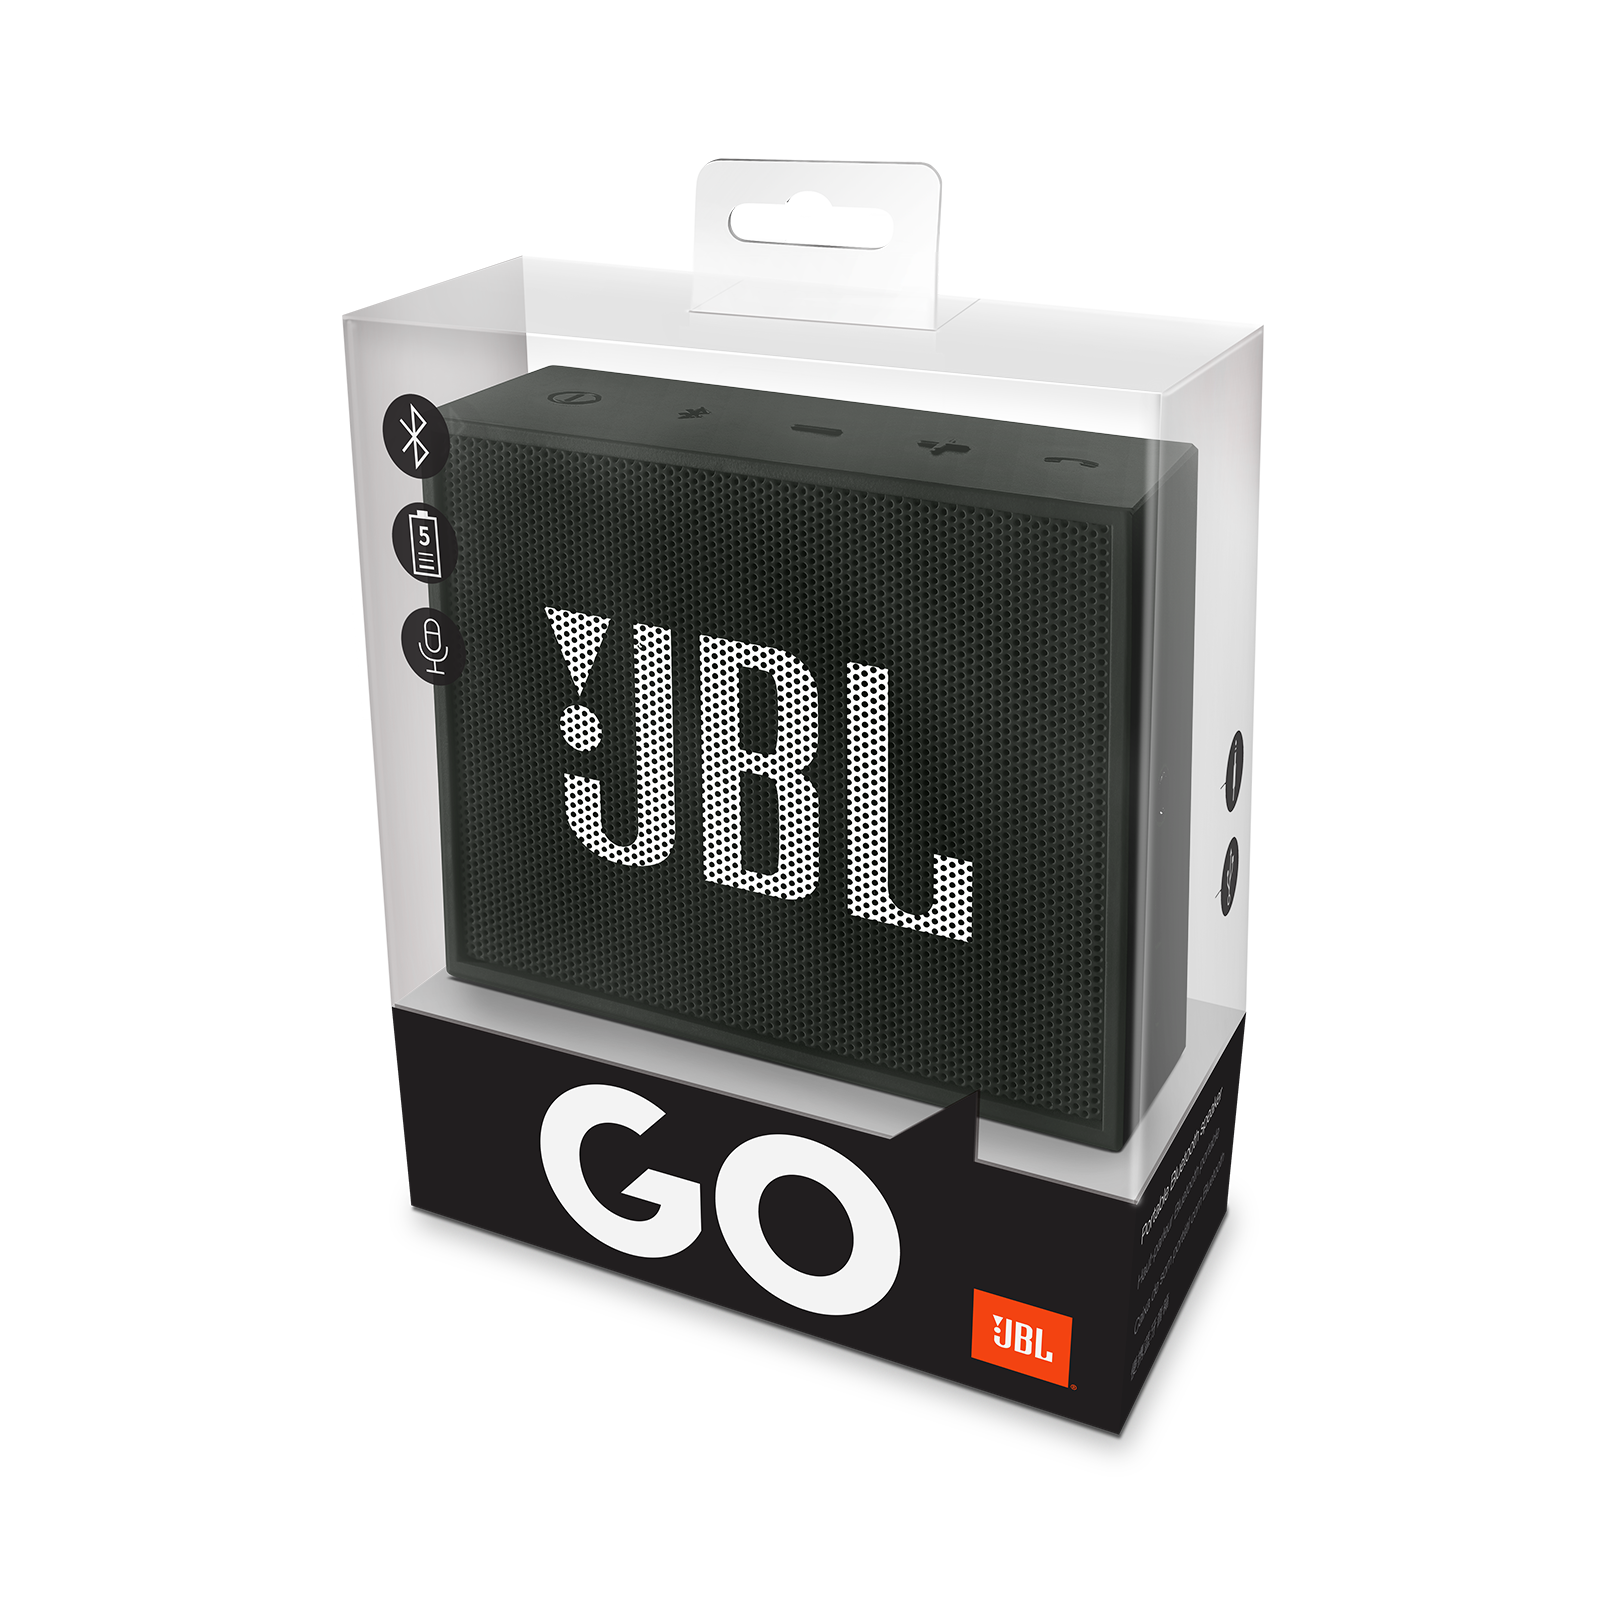 jbl go bluetooth speaker manual